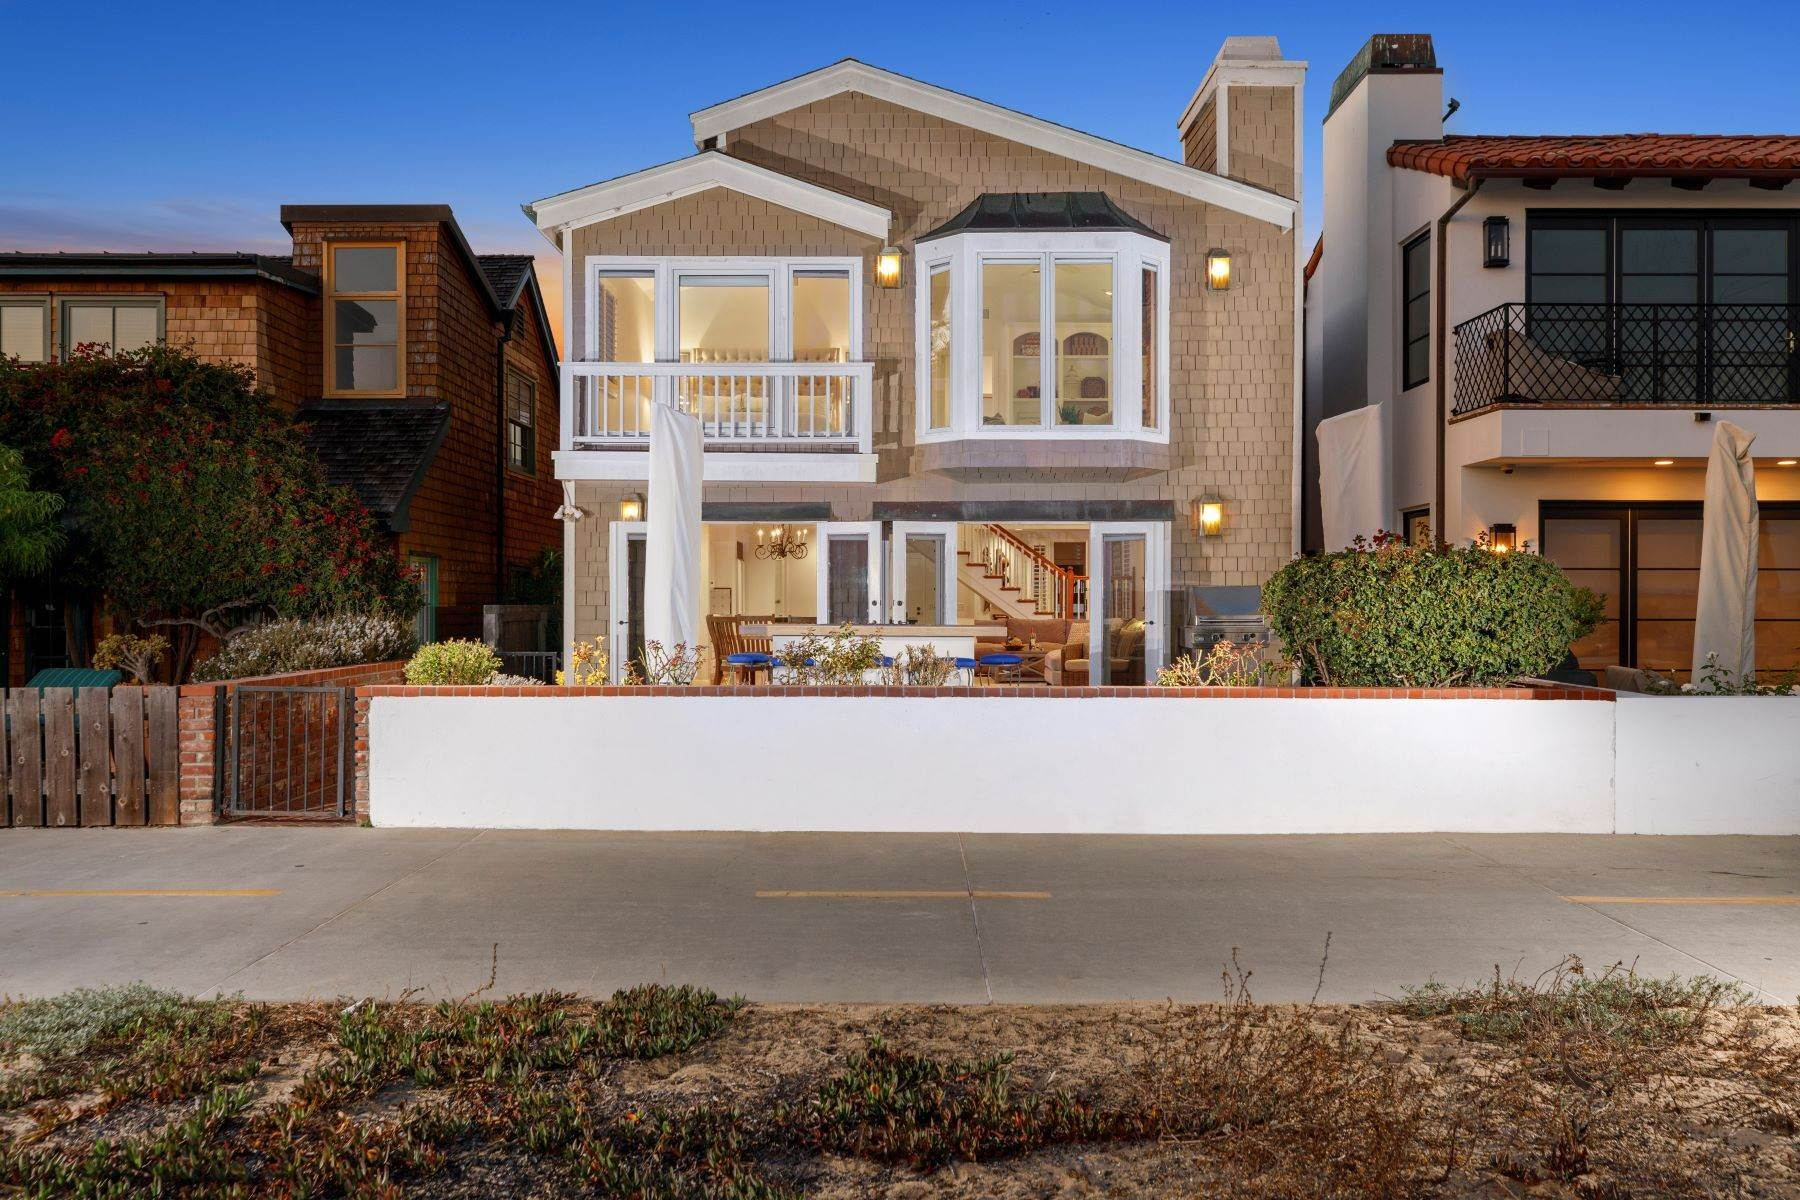 Single Family Homes for Sale at 1209 East Balboa Boulevard Newport Beach, California 92661 United States